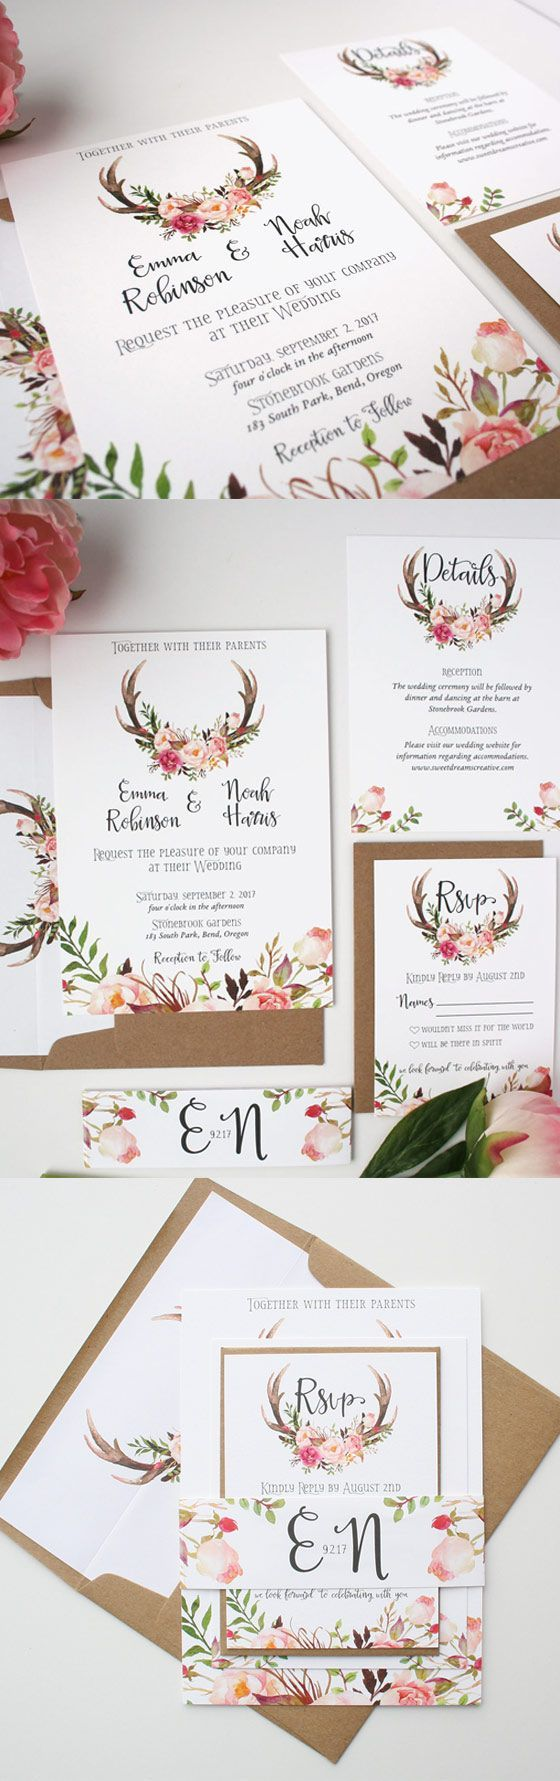 Must have! Antler wedding invitations for a rustic wedding.